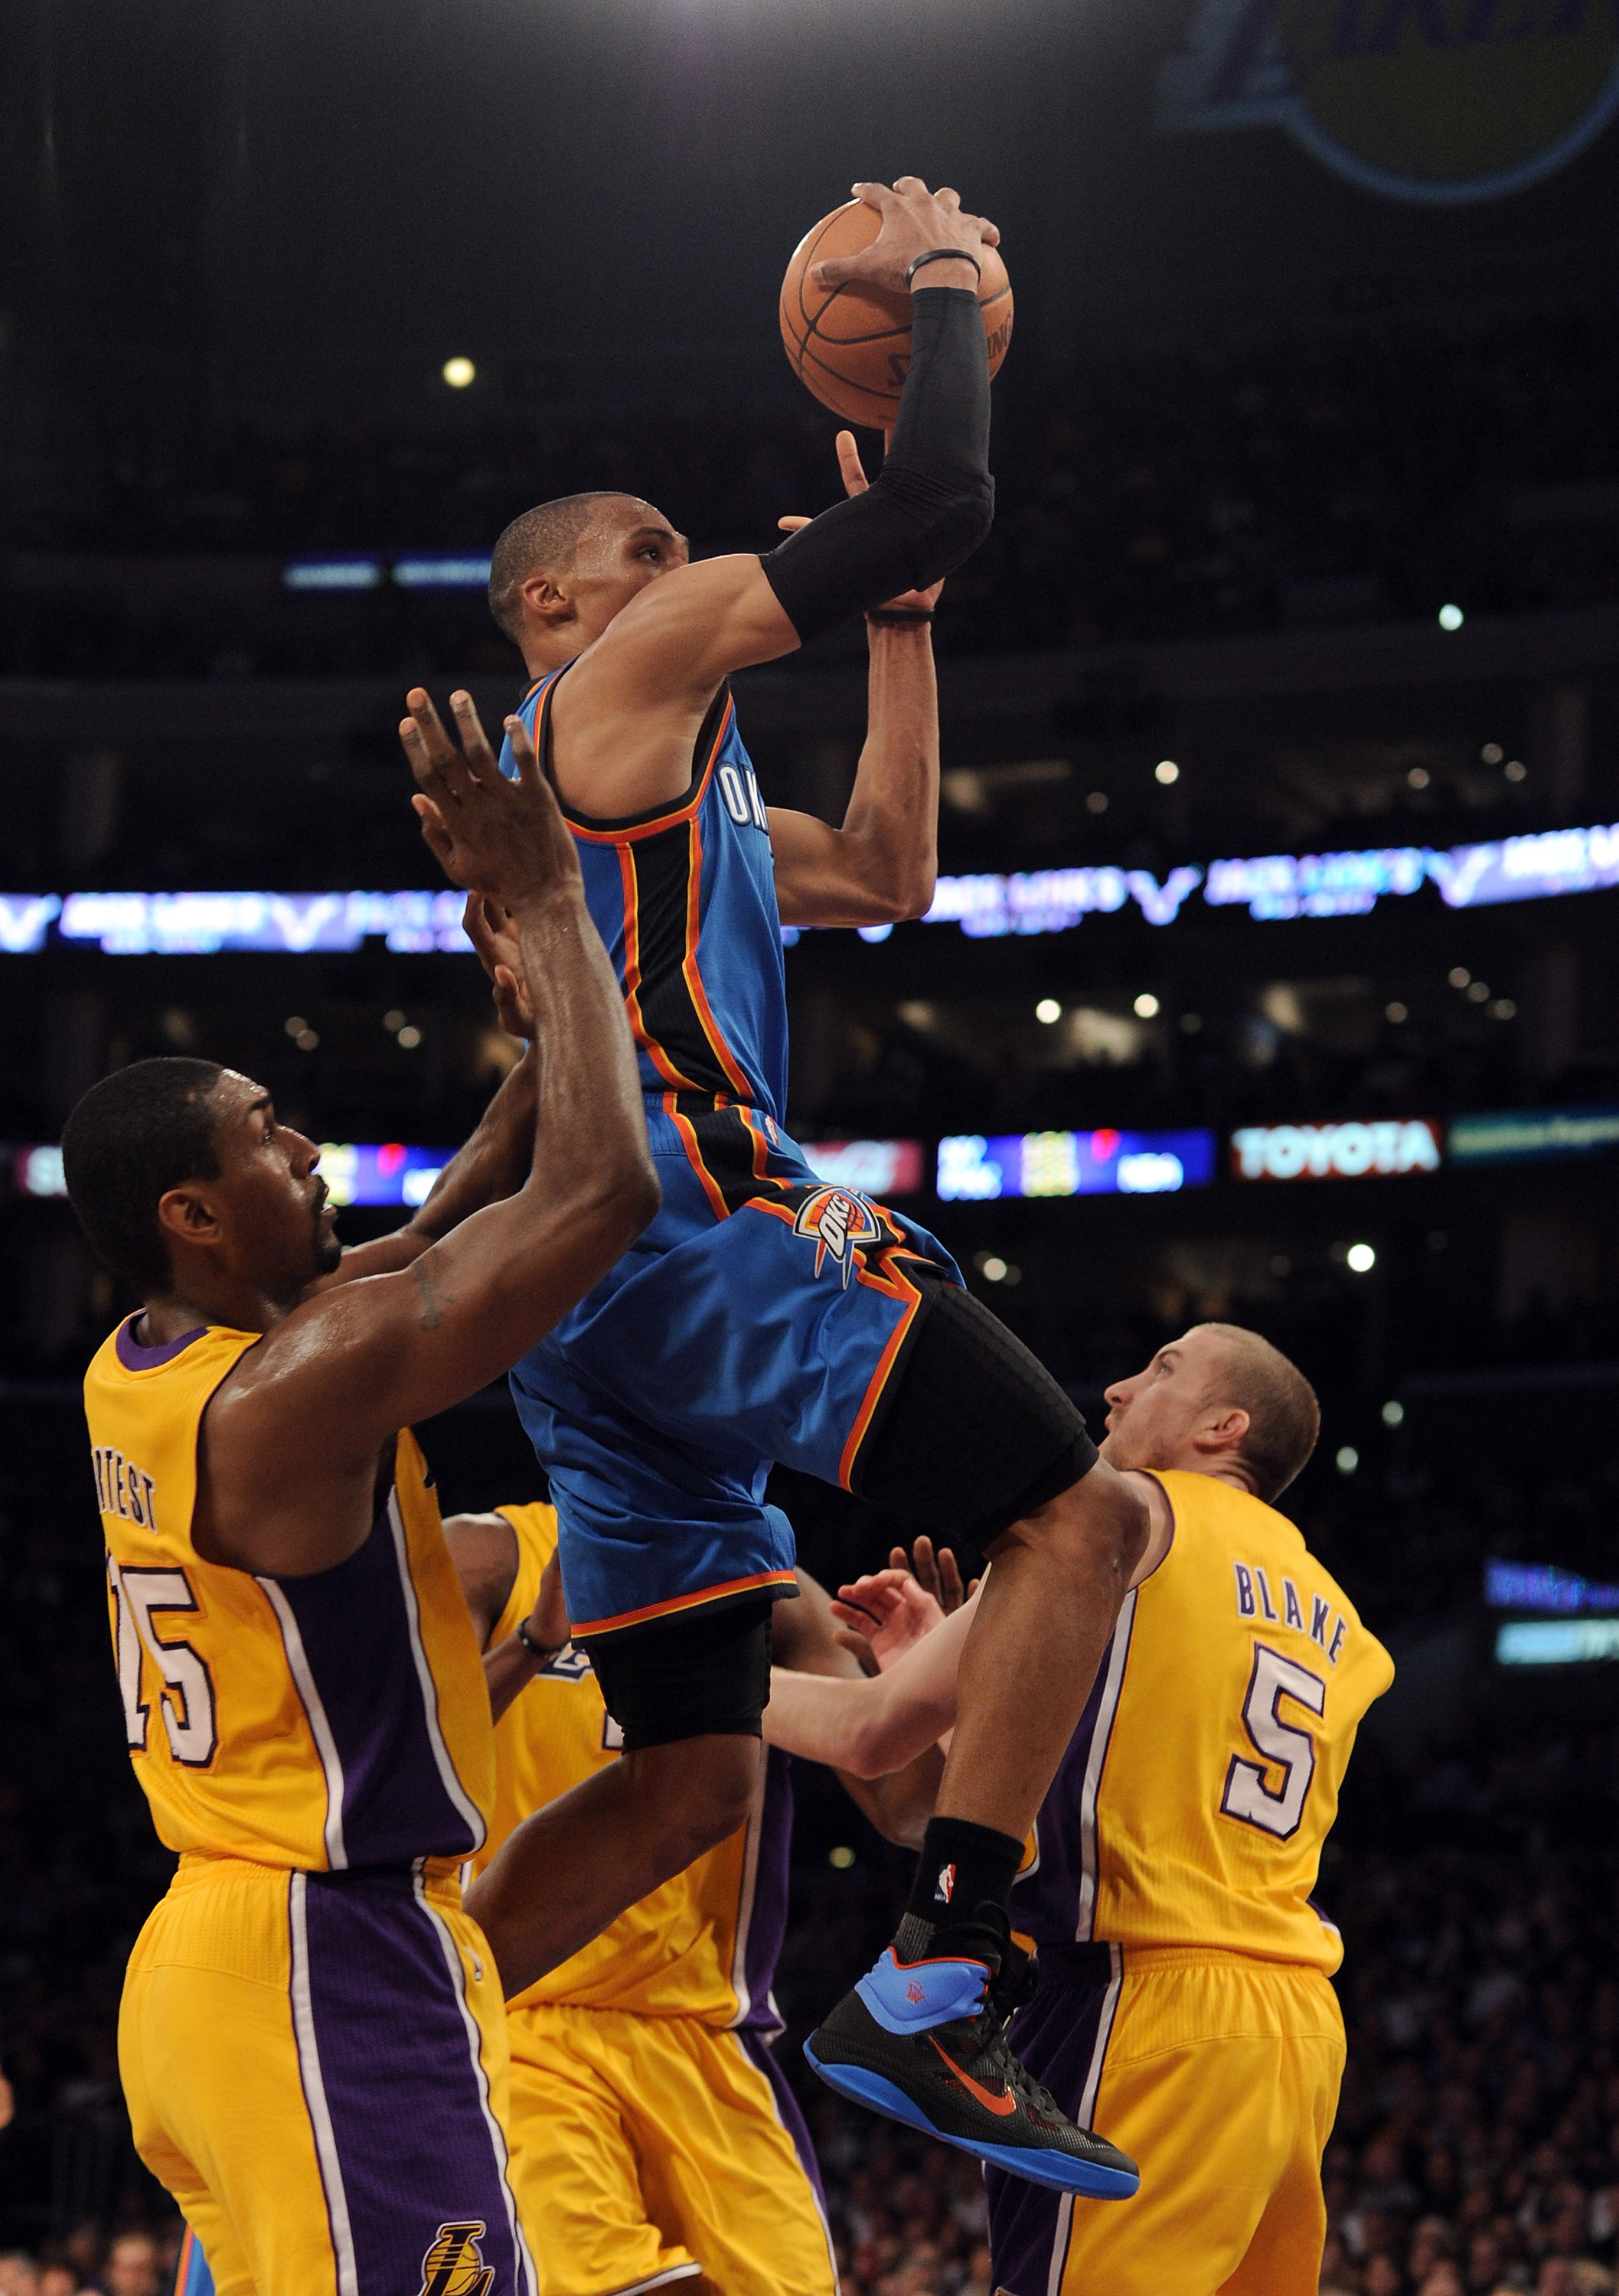 LOS ANGELES, CA - JANUARY 17:  Russell Westbrook #0 of the Oklahoma City Thunder scores on a layup between Ron Artest #15 and Steve Blake #5 of the Los Angeles Lakers during a 101-94 Laker win at the Staples Center on January 17, 2011 in Los Angeles, Cali